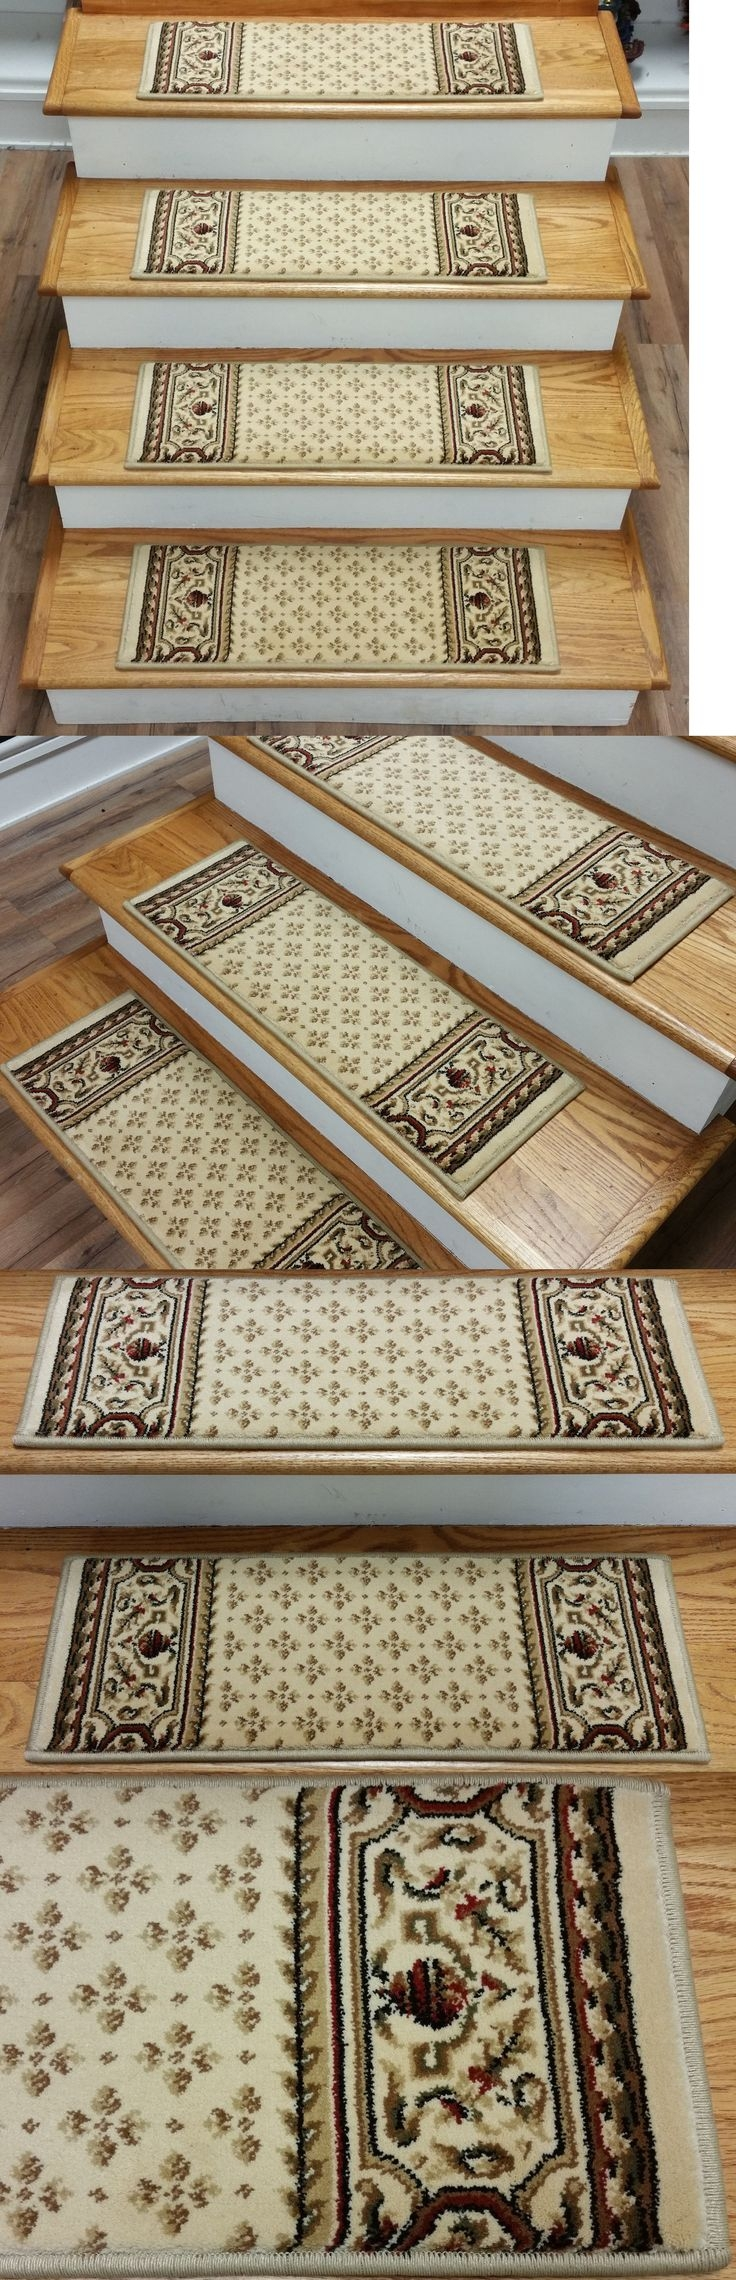 Best 25 Traditional Stair Tread Rugs Ideas Only On Pinterest Regarding Rustic Stair Tread Rugs (#6 of 20)